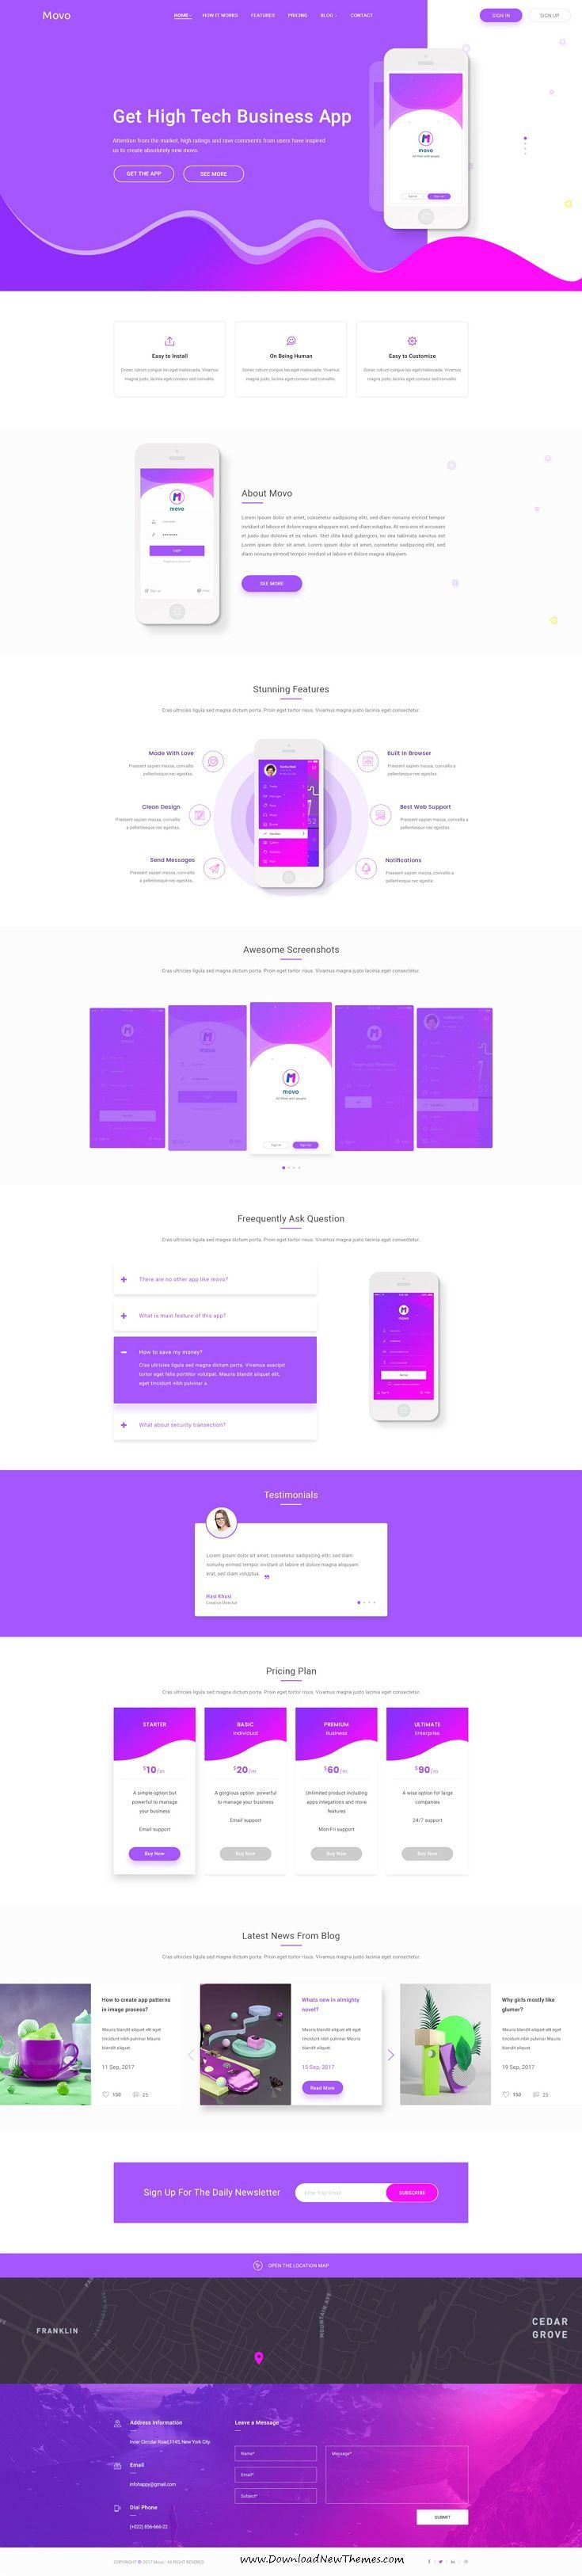 Lpo Template 295 Best Business Online Images On Pinterest